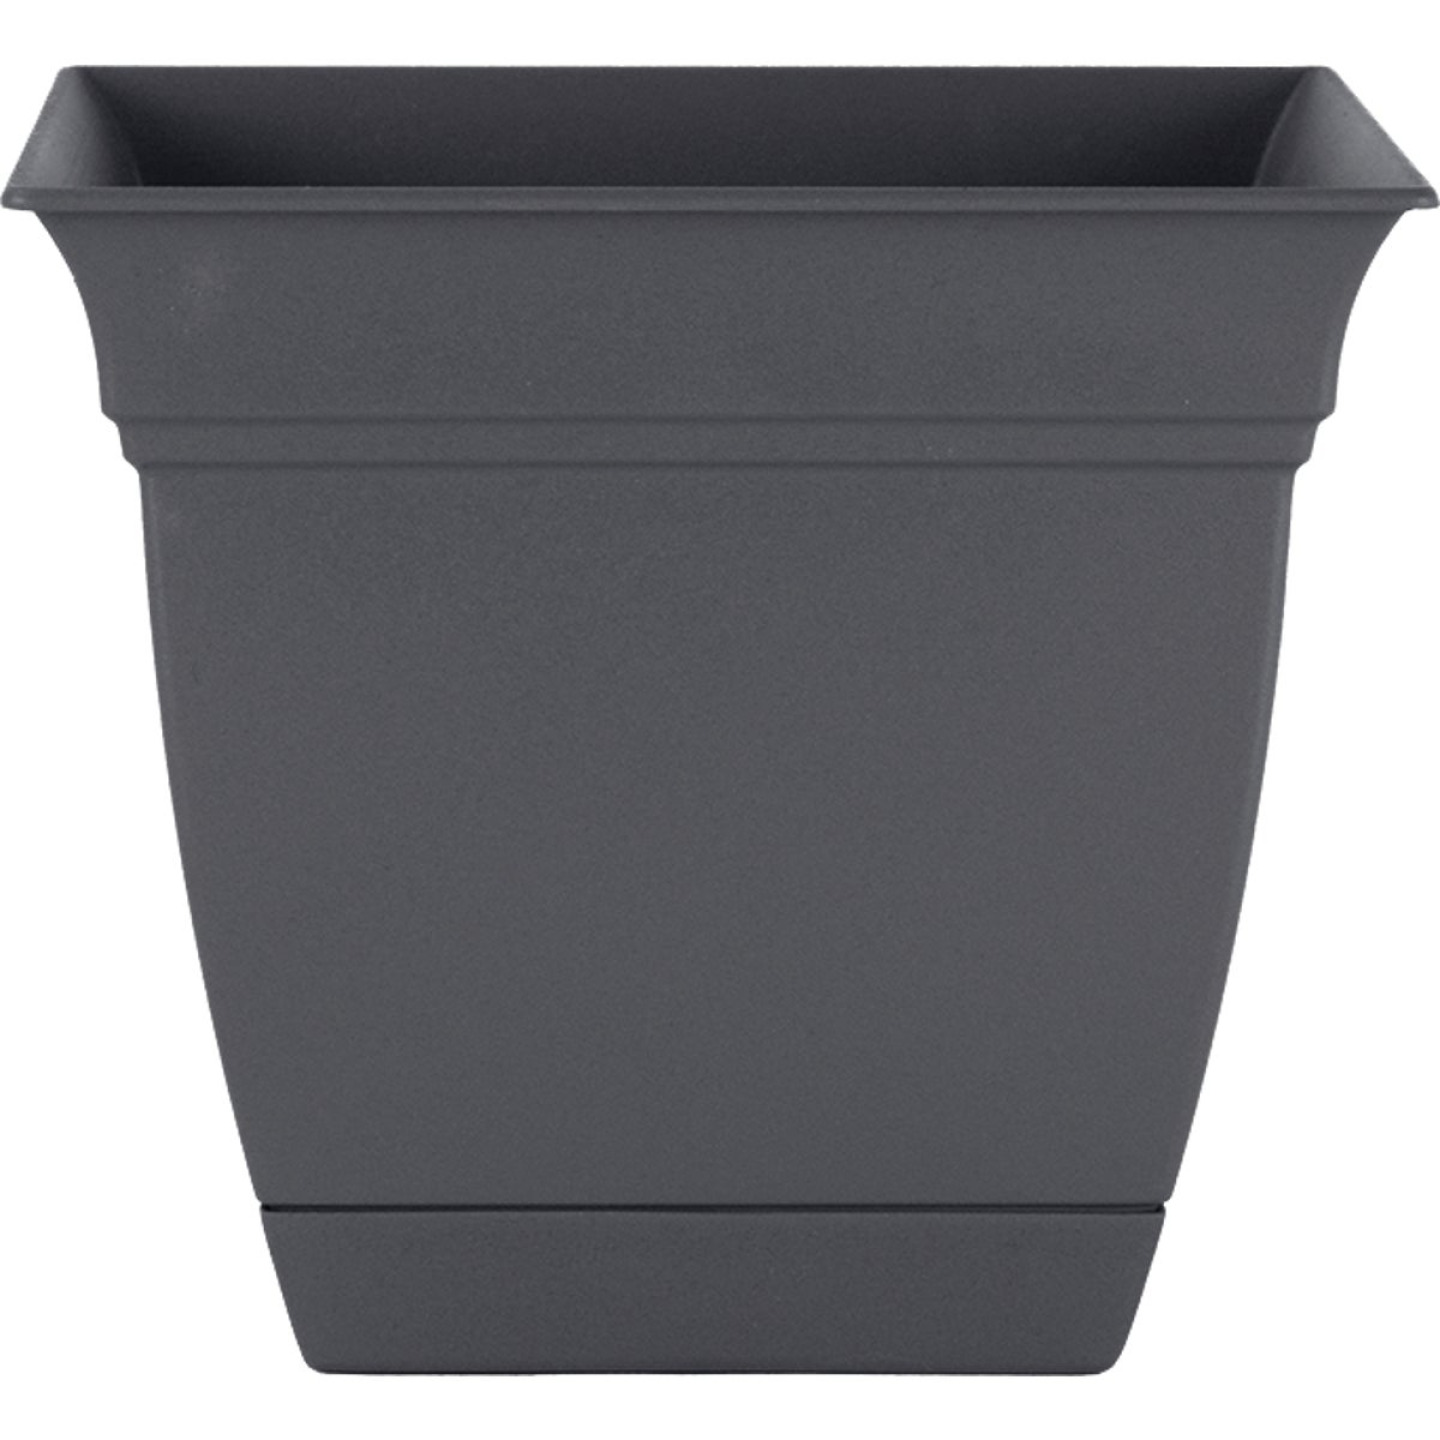 HC Companies Eclipse 12 In. x 12 In. x 10.50 In. Resin Warm Gray Planter Image 1